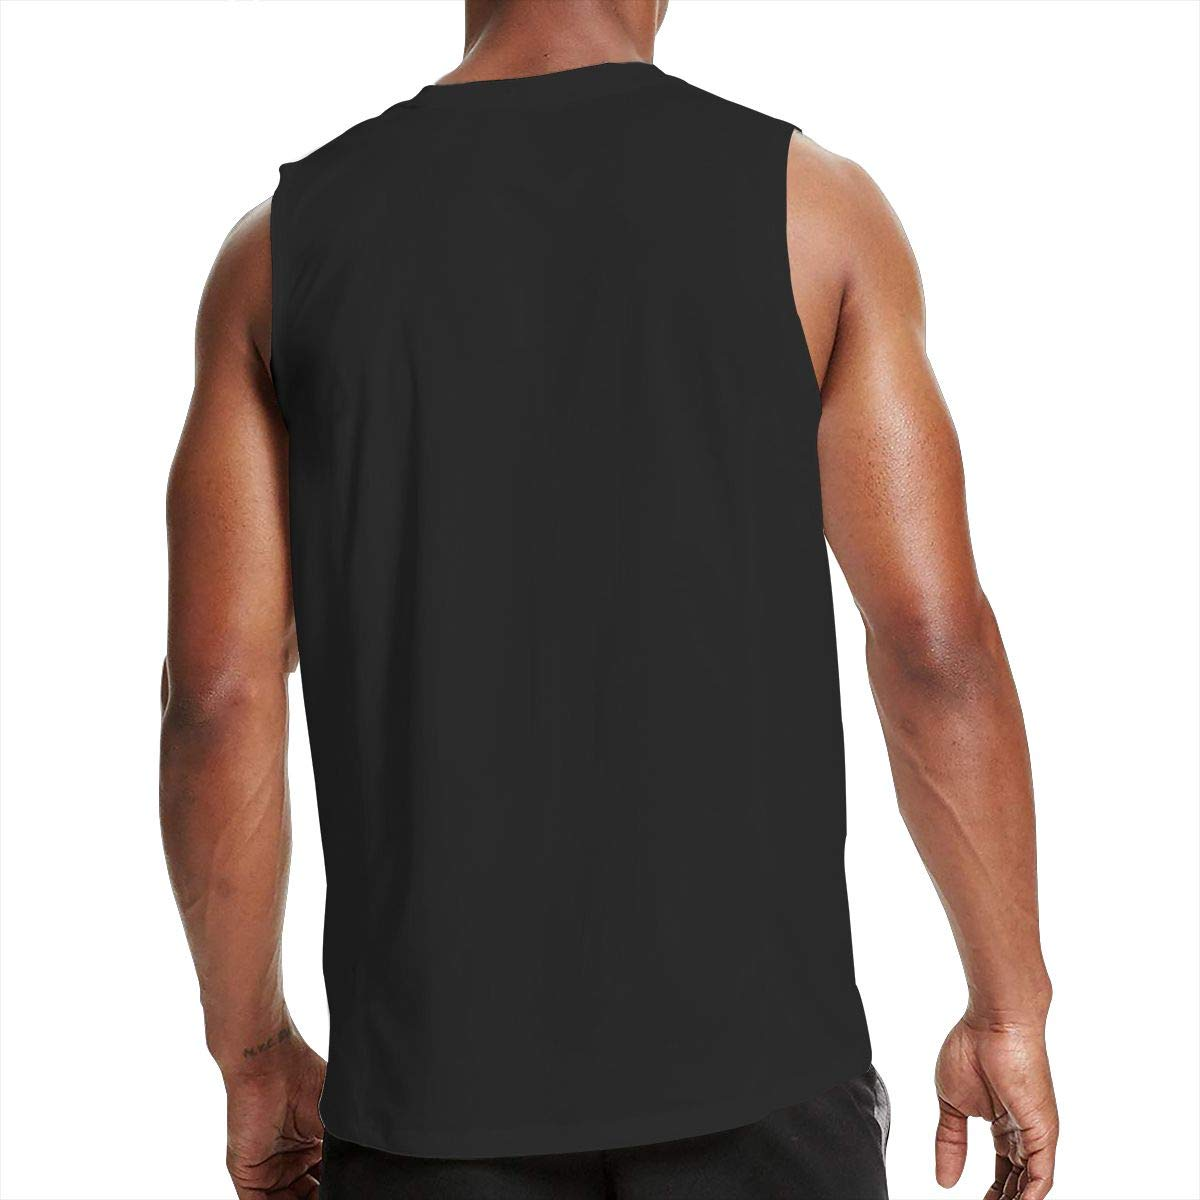 c6f707f929d74 Amazon.com  Love Crossfit Workout Barbell Men Sleeveless Tank Tops Tee Shirt   Clothing